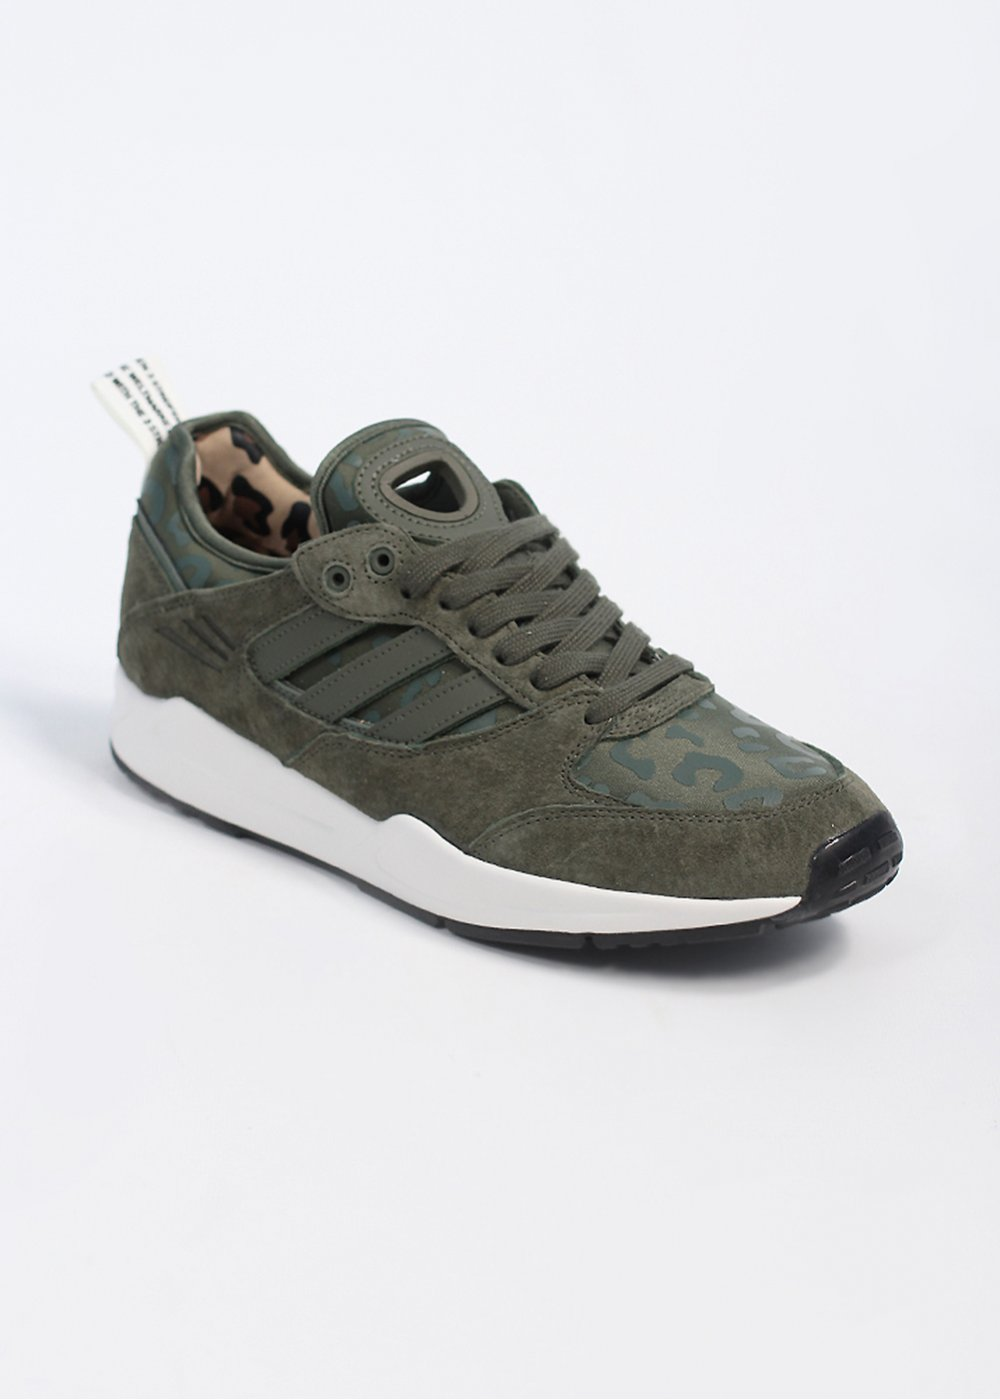 adidas Originals Footwear Tech Super 2.0 Leather Trainers Green